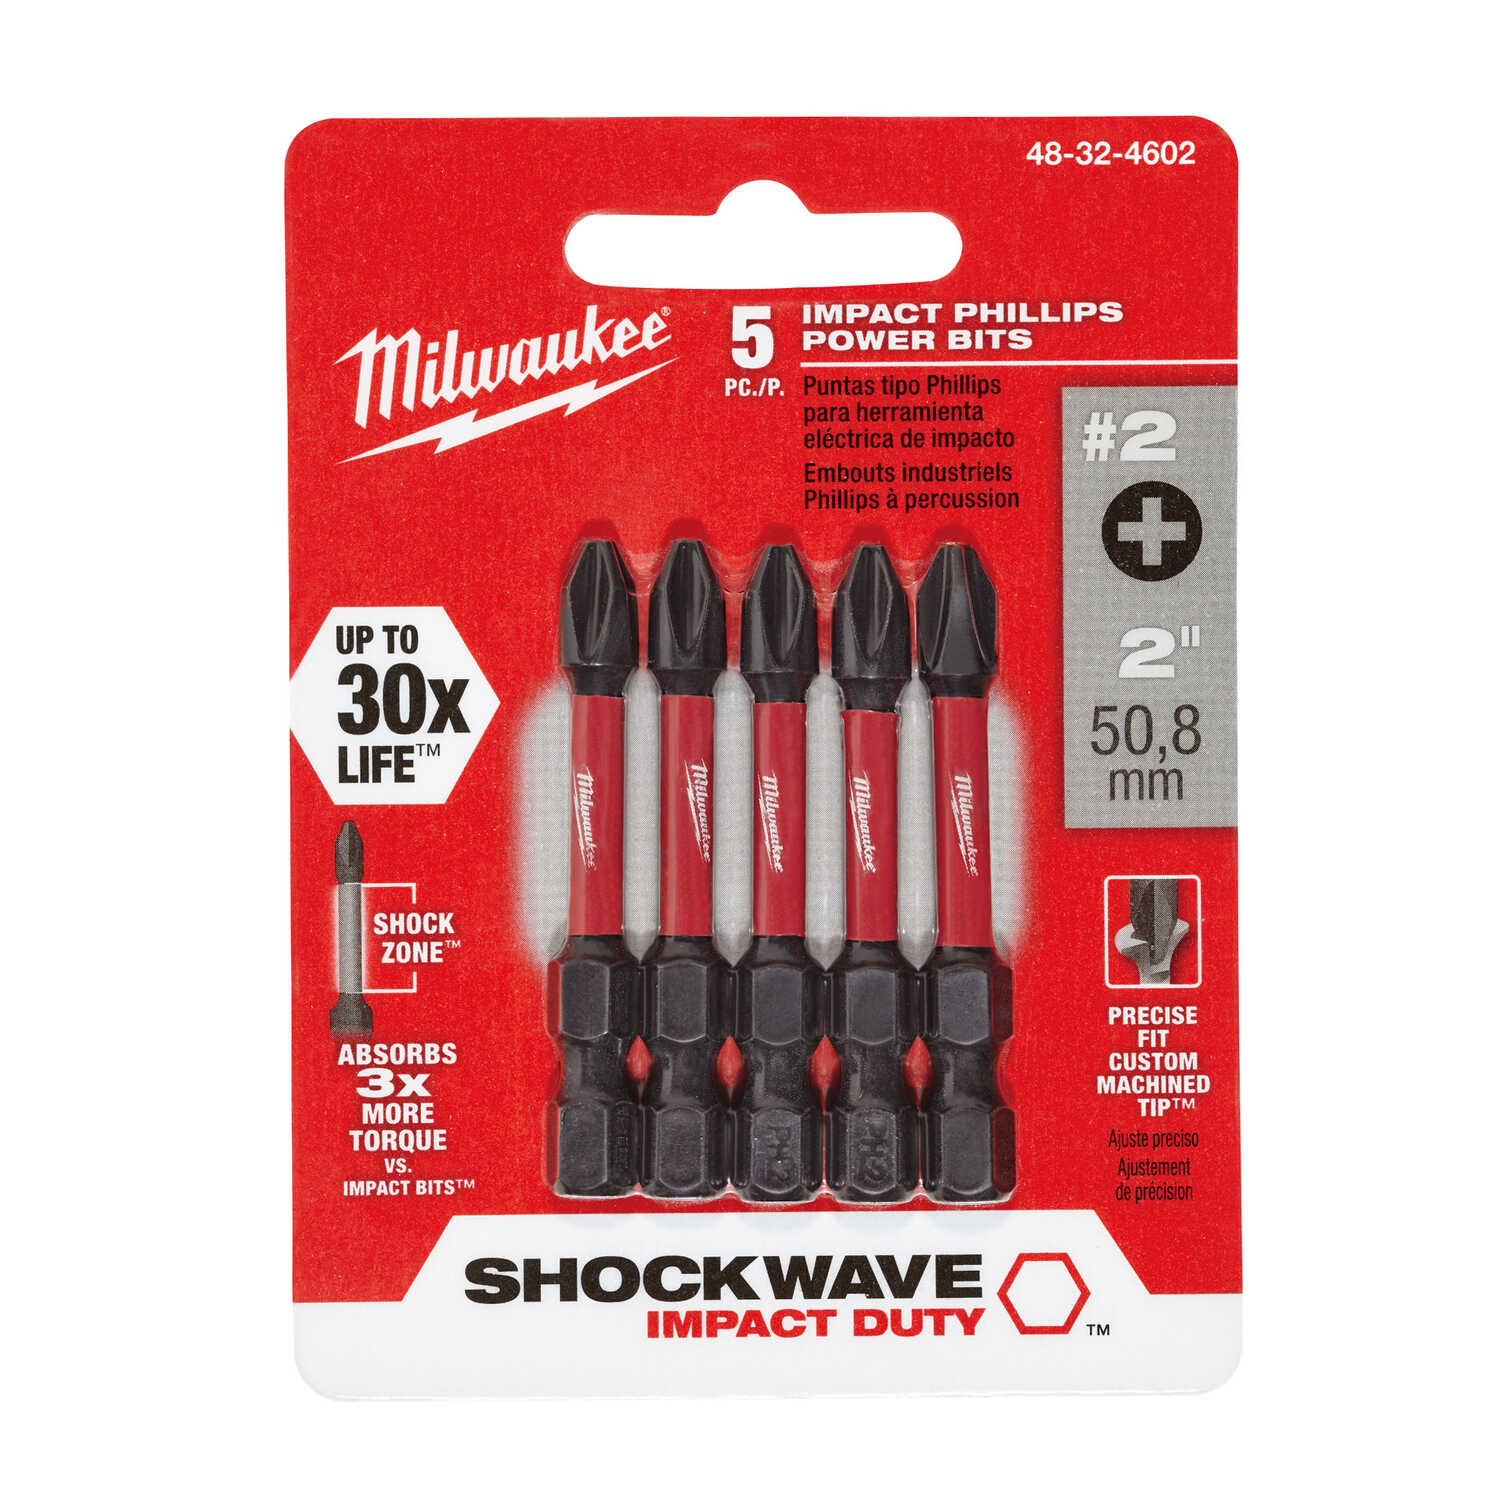 Milwaukee  SHOCKWAVE  Phillips  #2  2 in. L Impact Duty  Power Bit  1/4 in. Hex Shank  5 pc.